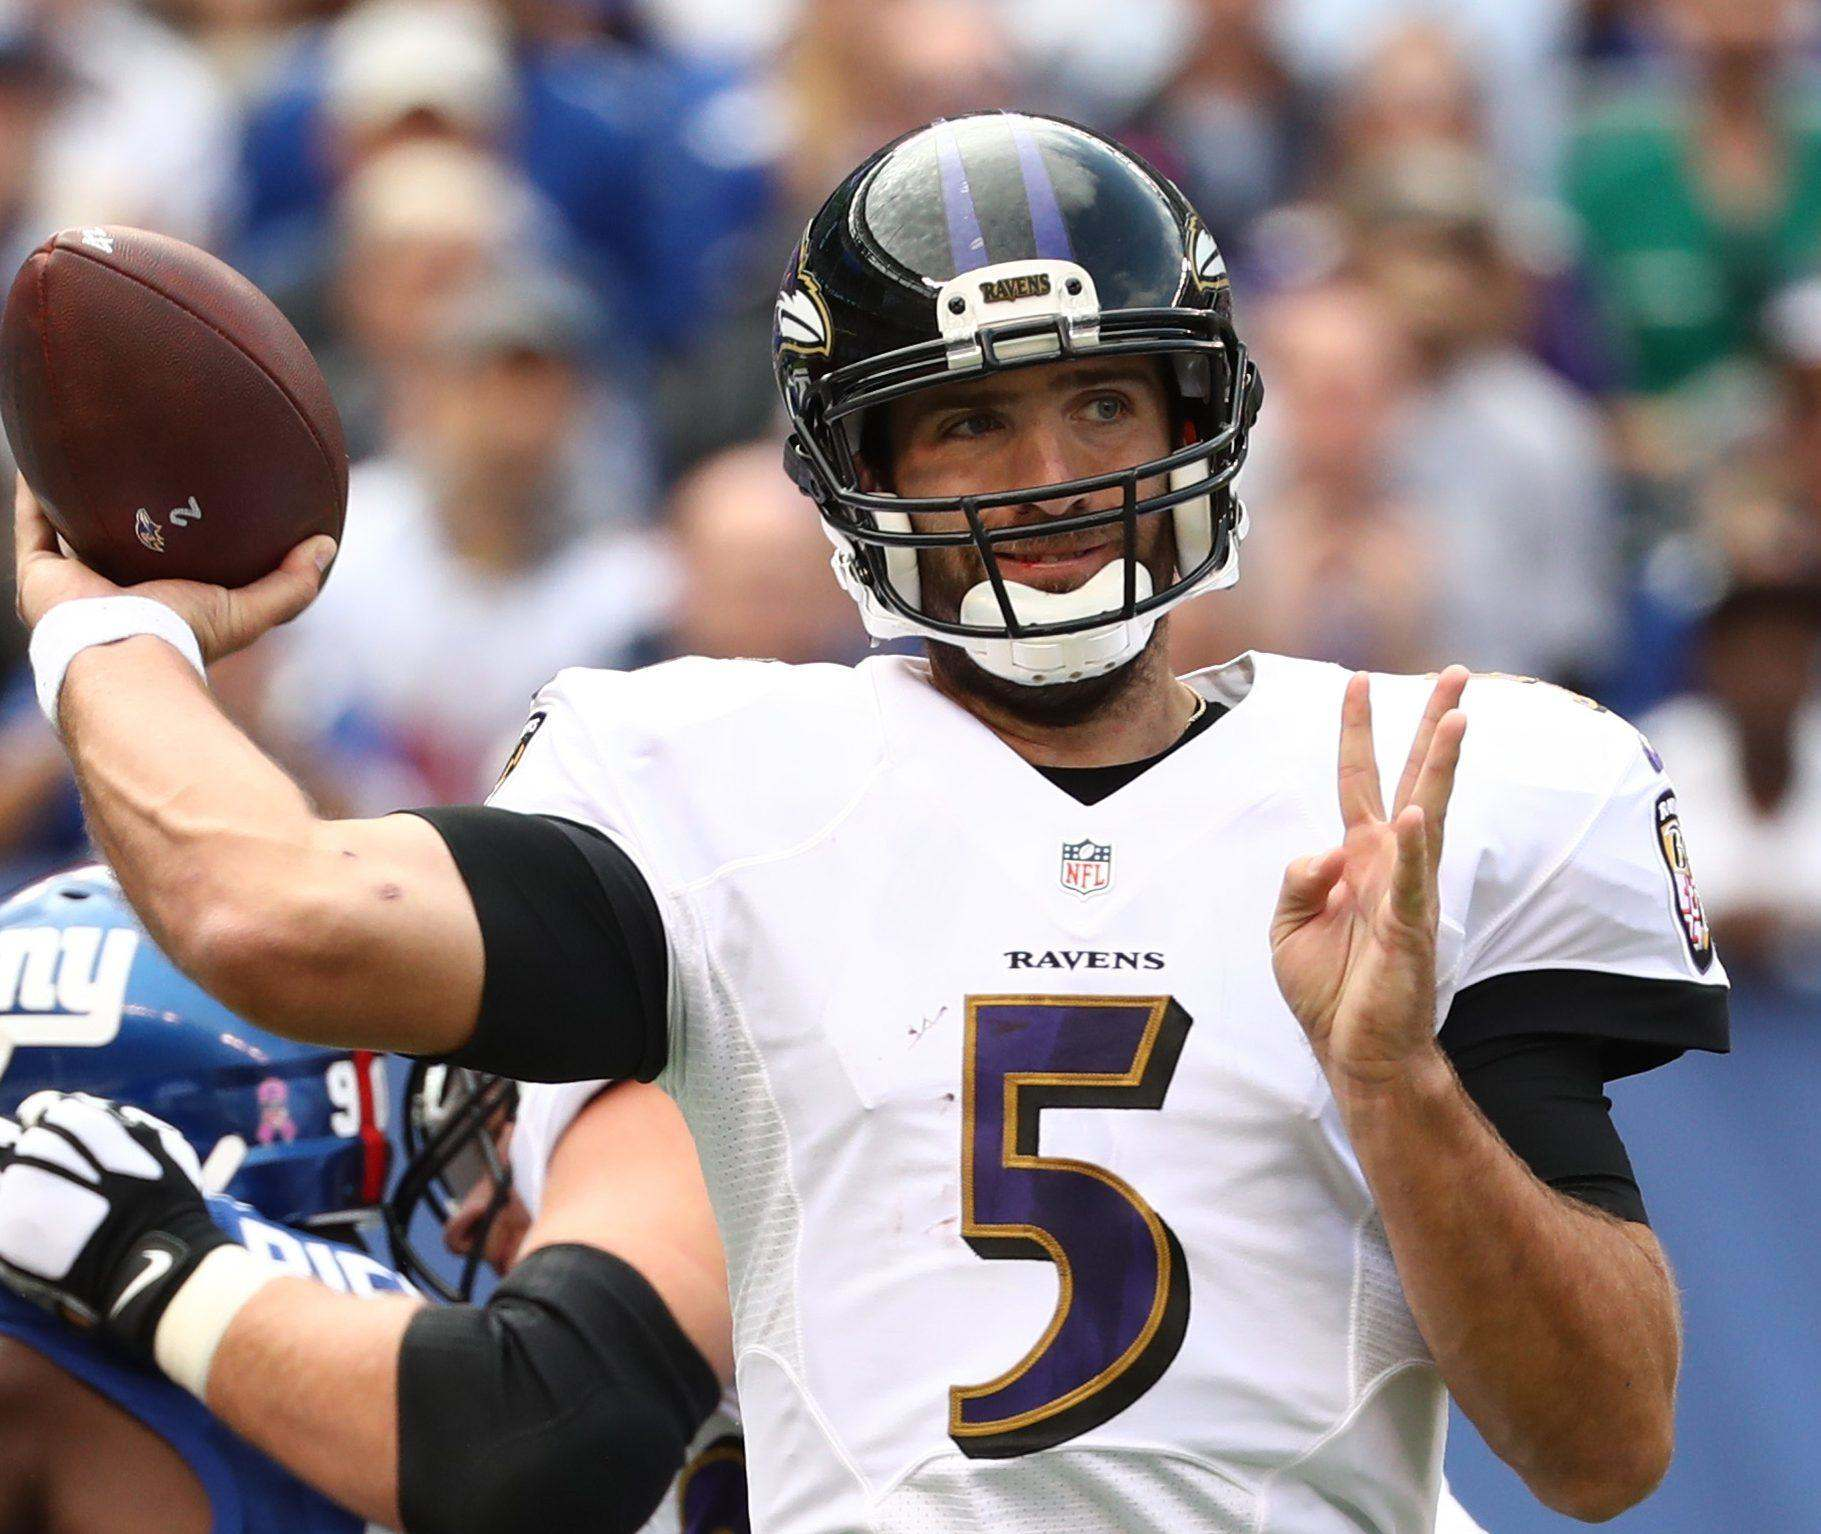 Ravens QB Joe Flacco Misses Second Straight Practice